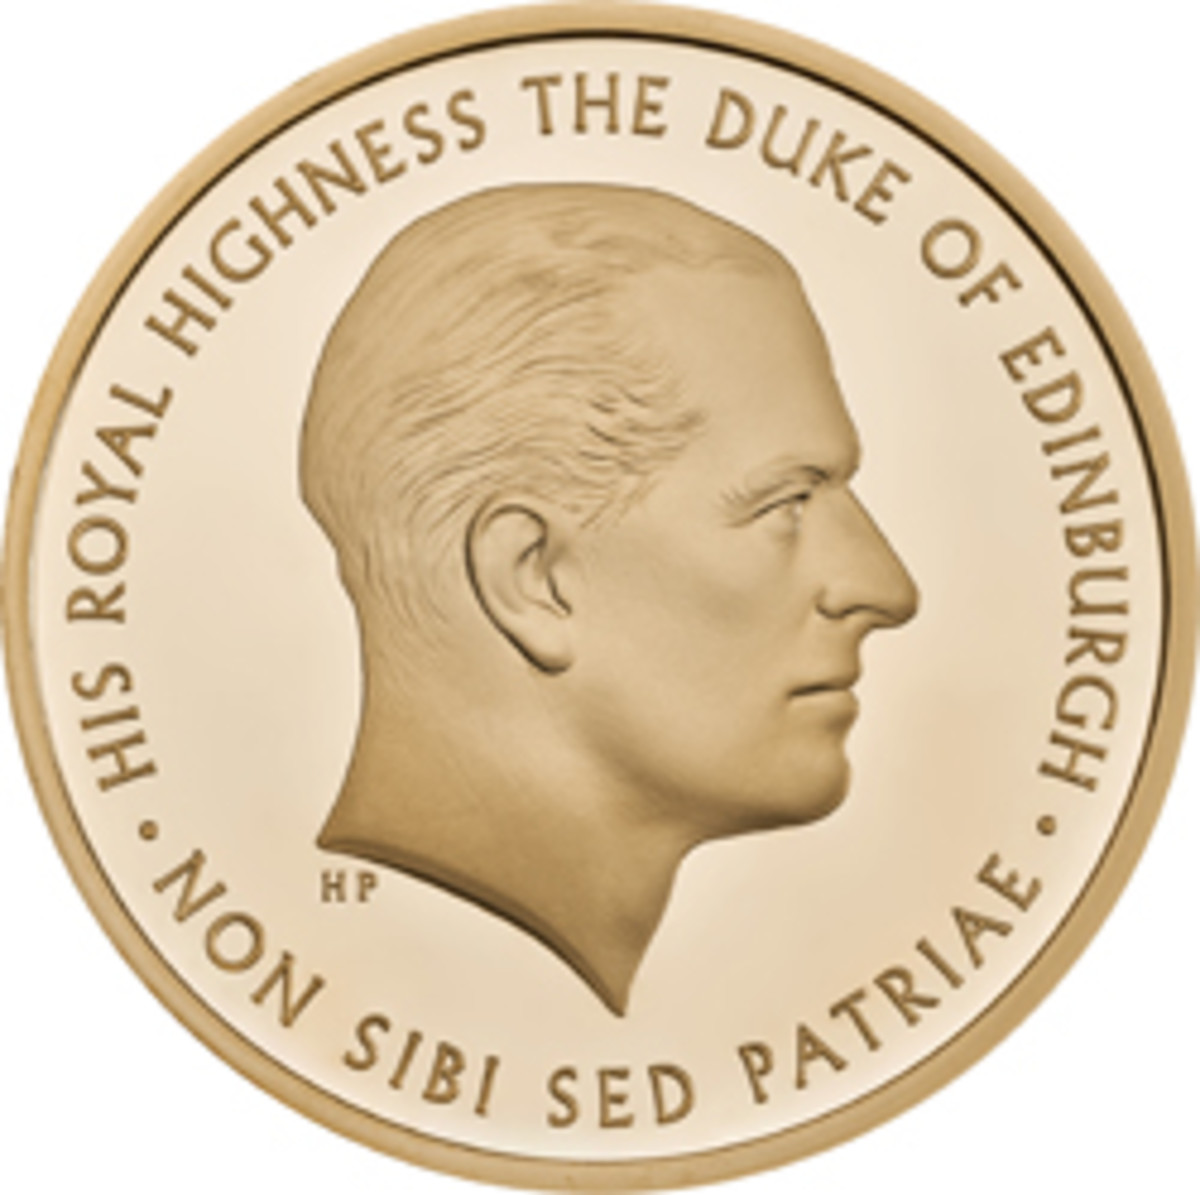 The reverse of the Prince Philip commemorative £5 coin showing the effigy of the Prince. (Image courtesy & © The Royal Mint)